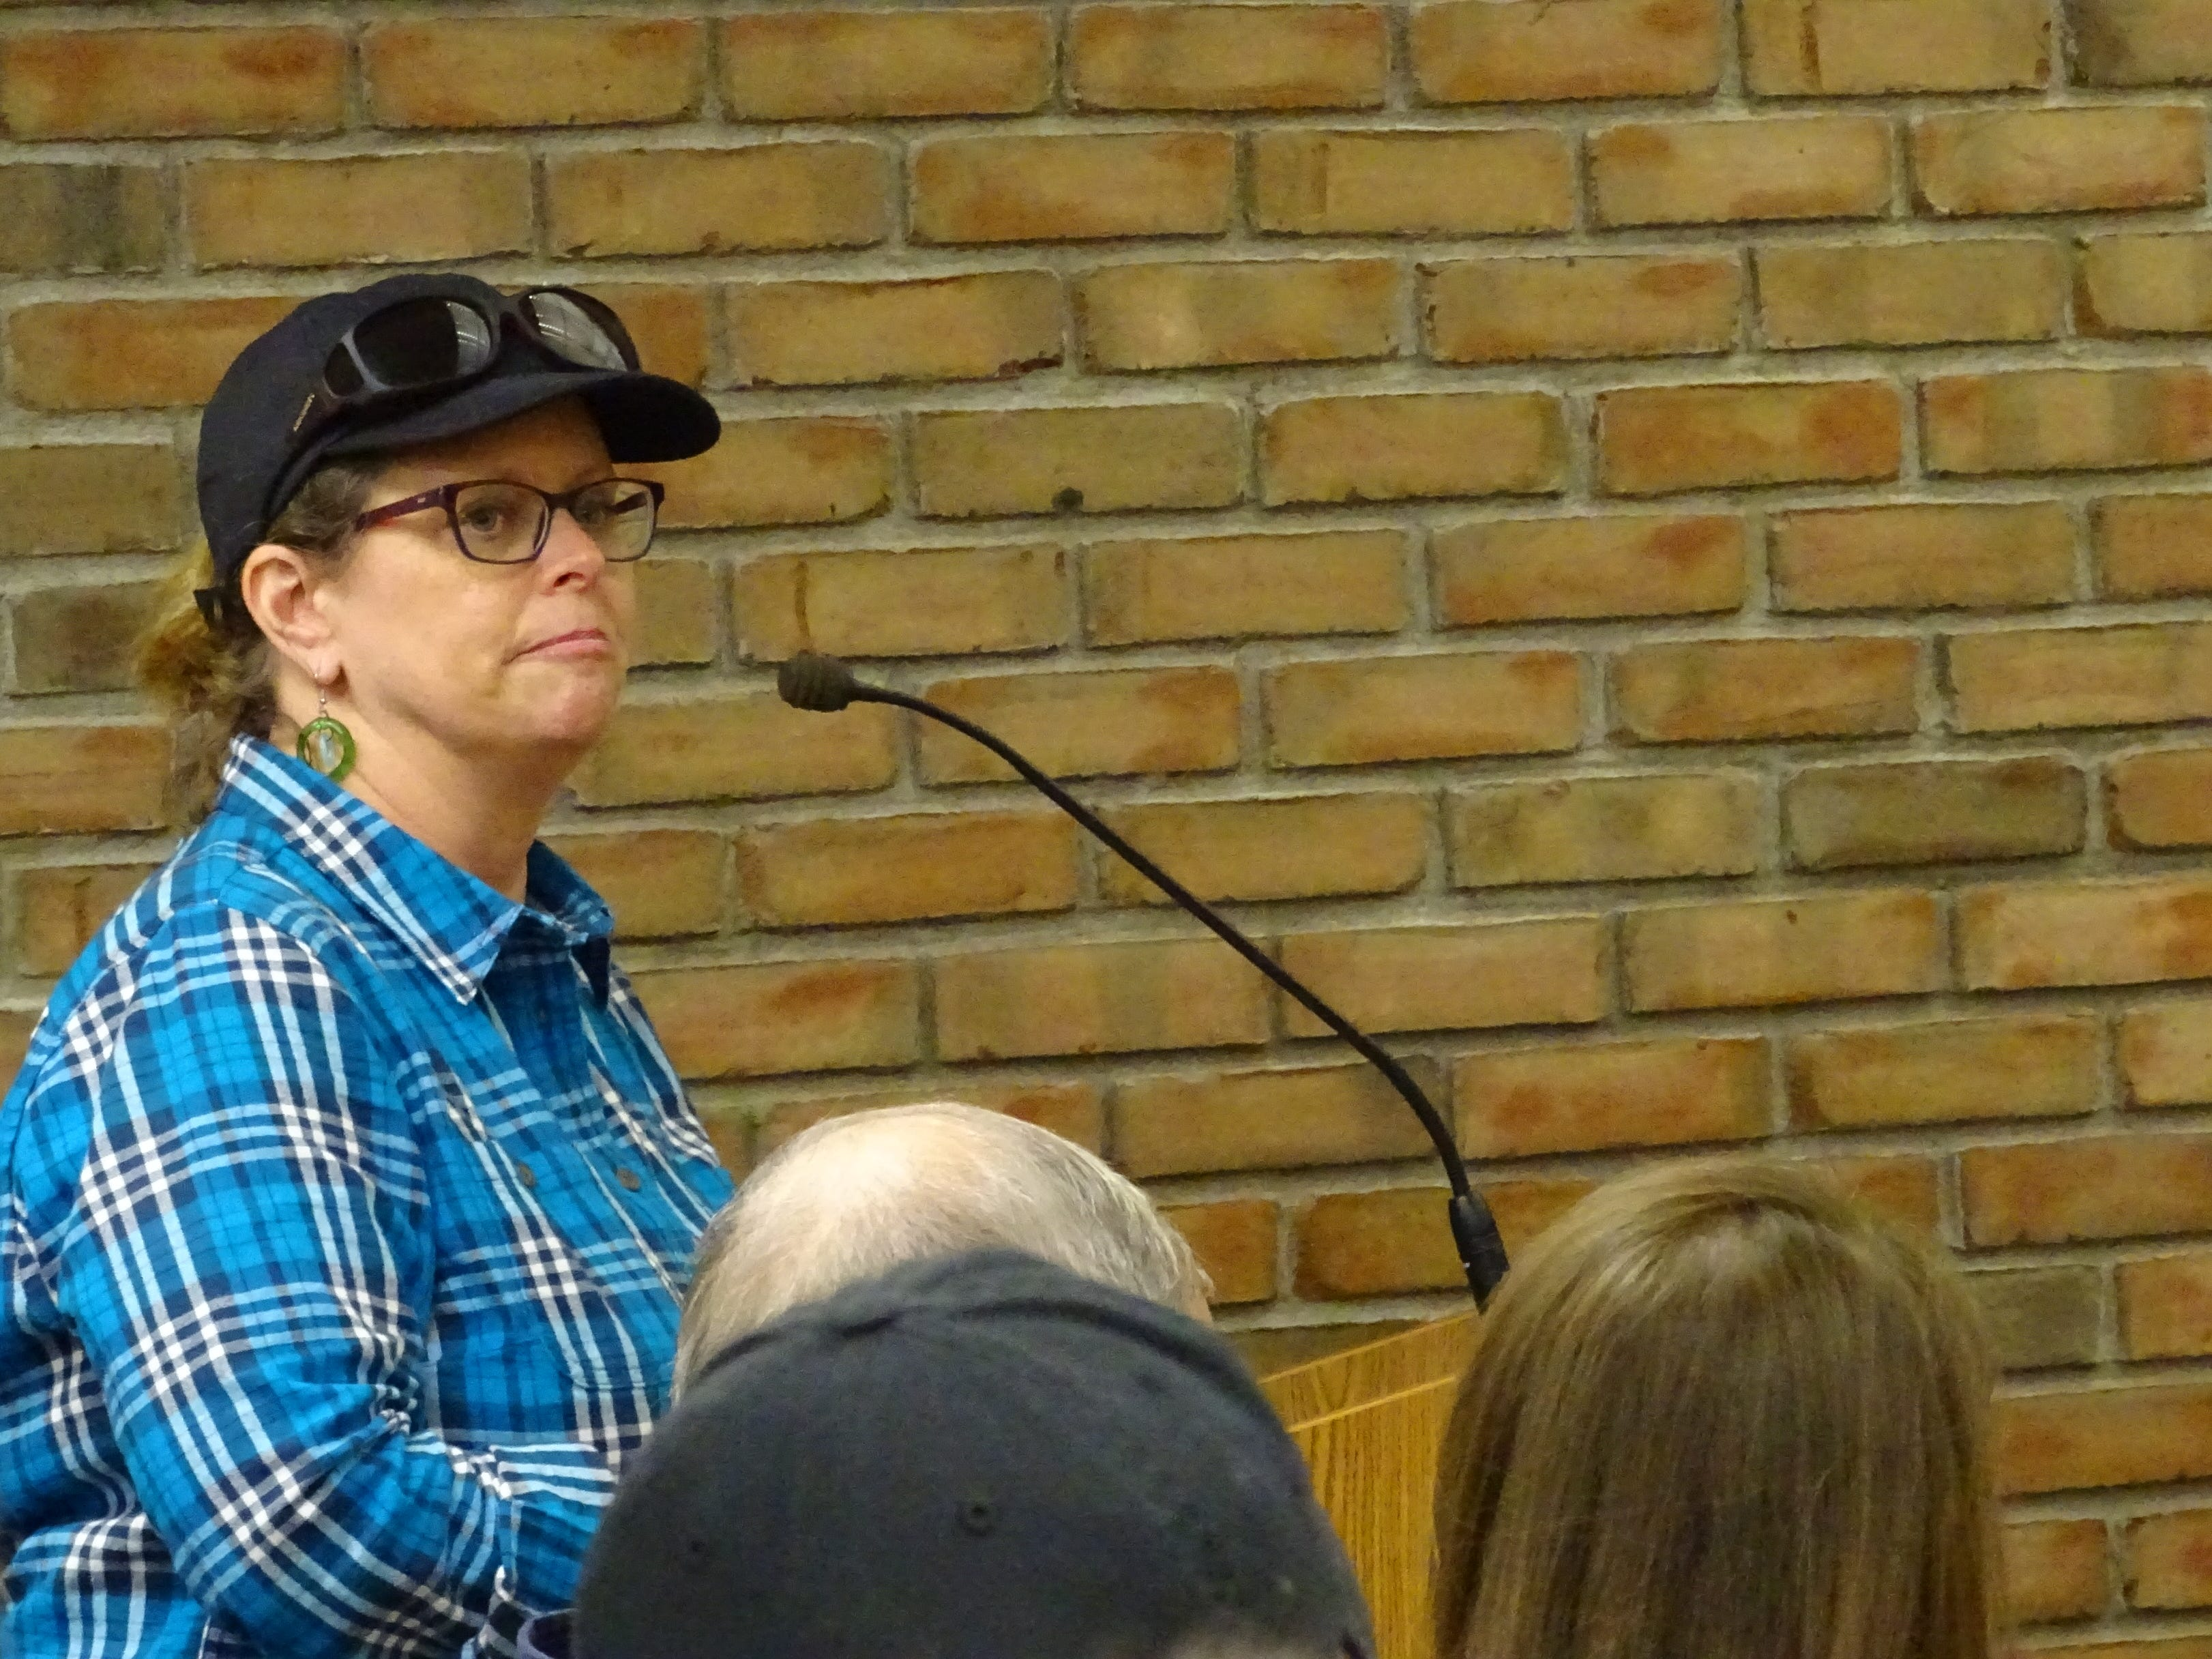 Northwest Ohio Director of Urban Forestry Stephanie Miller speaks to council after being recognized by Mayor Jeff Reser on Tuesday night.